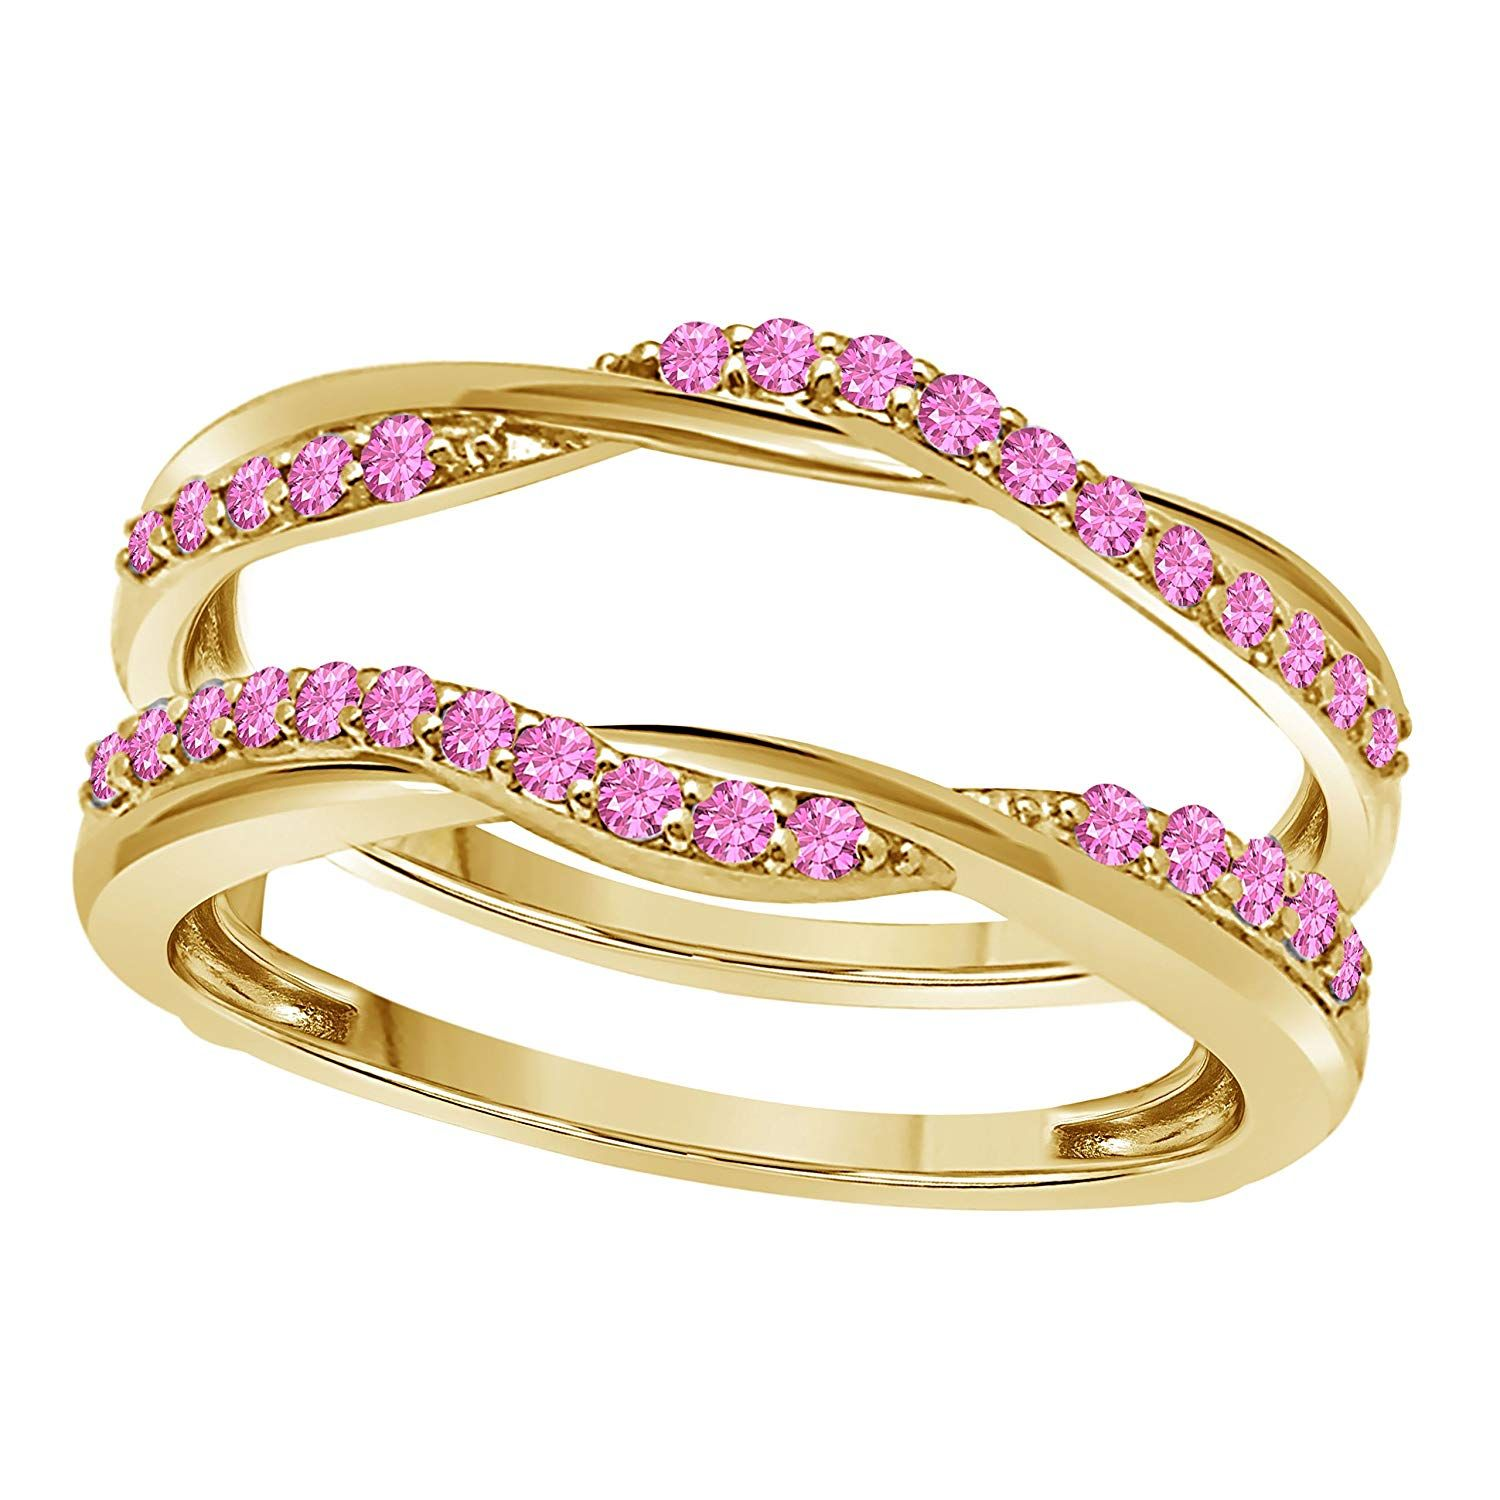 14K Yellow Gold Plated Delicate Bypass Infinity Style